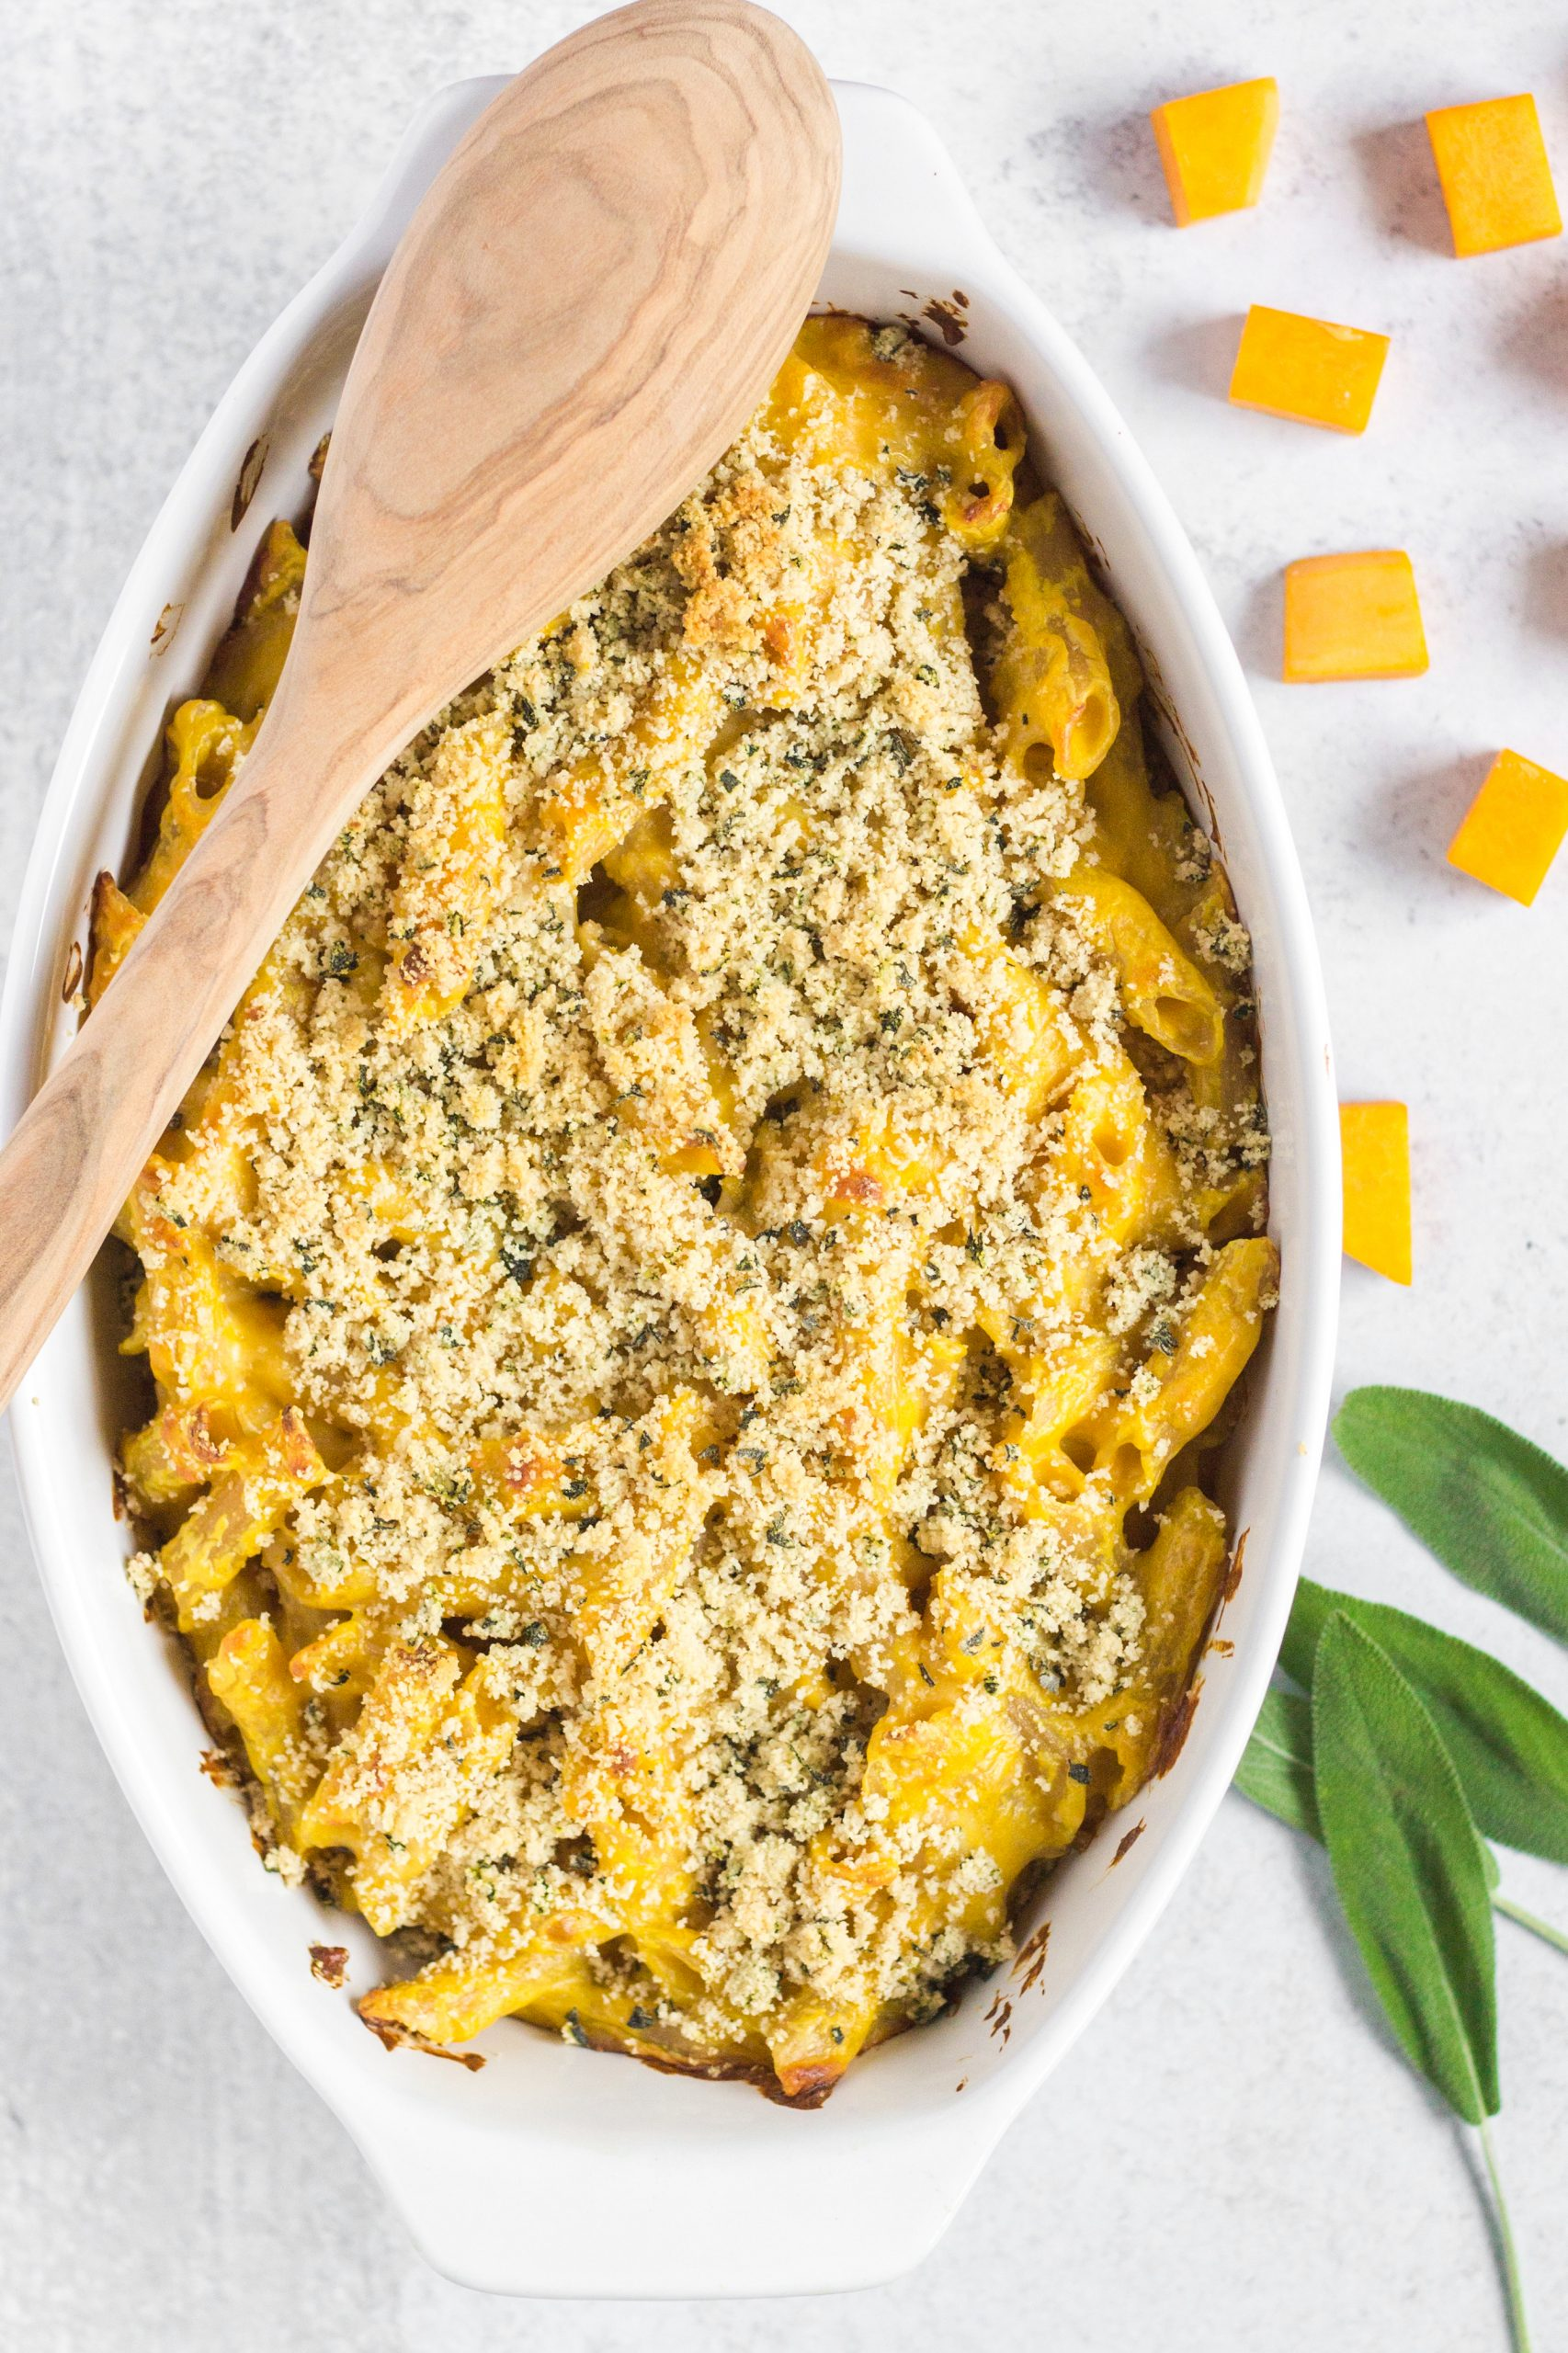 butternut squash mac and cheese in white serving dish with wooden spoon